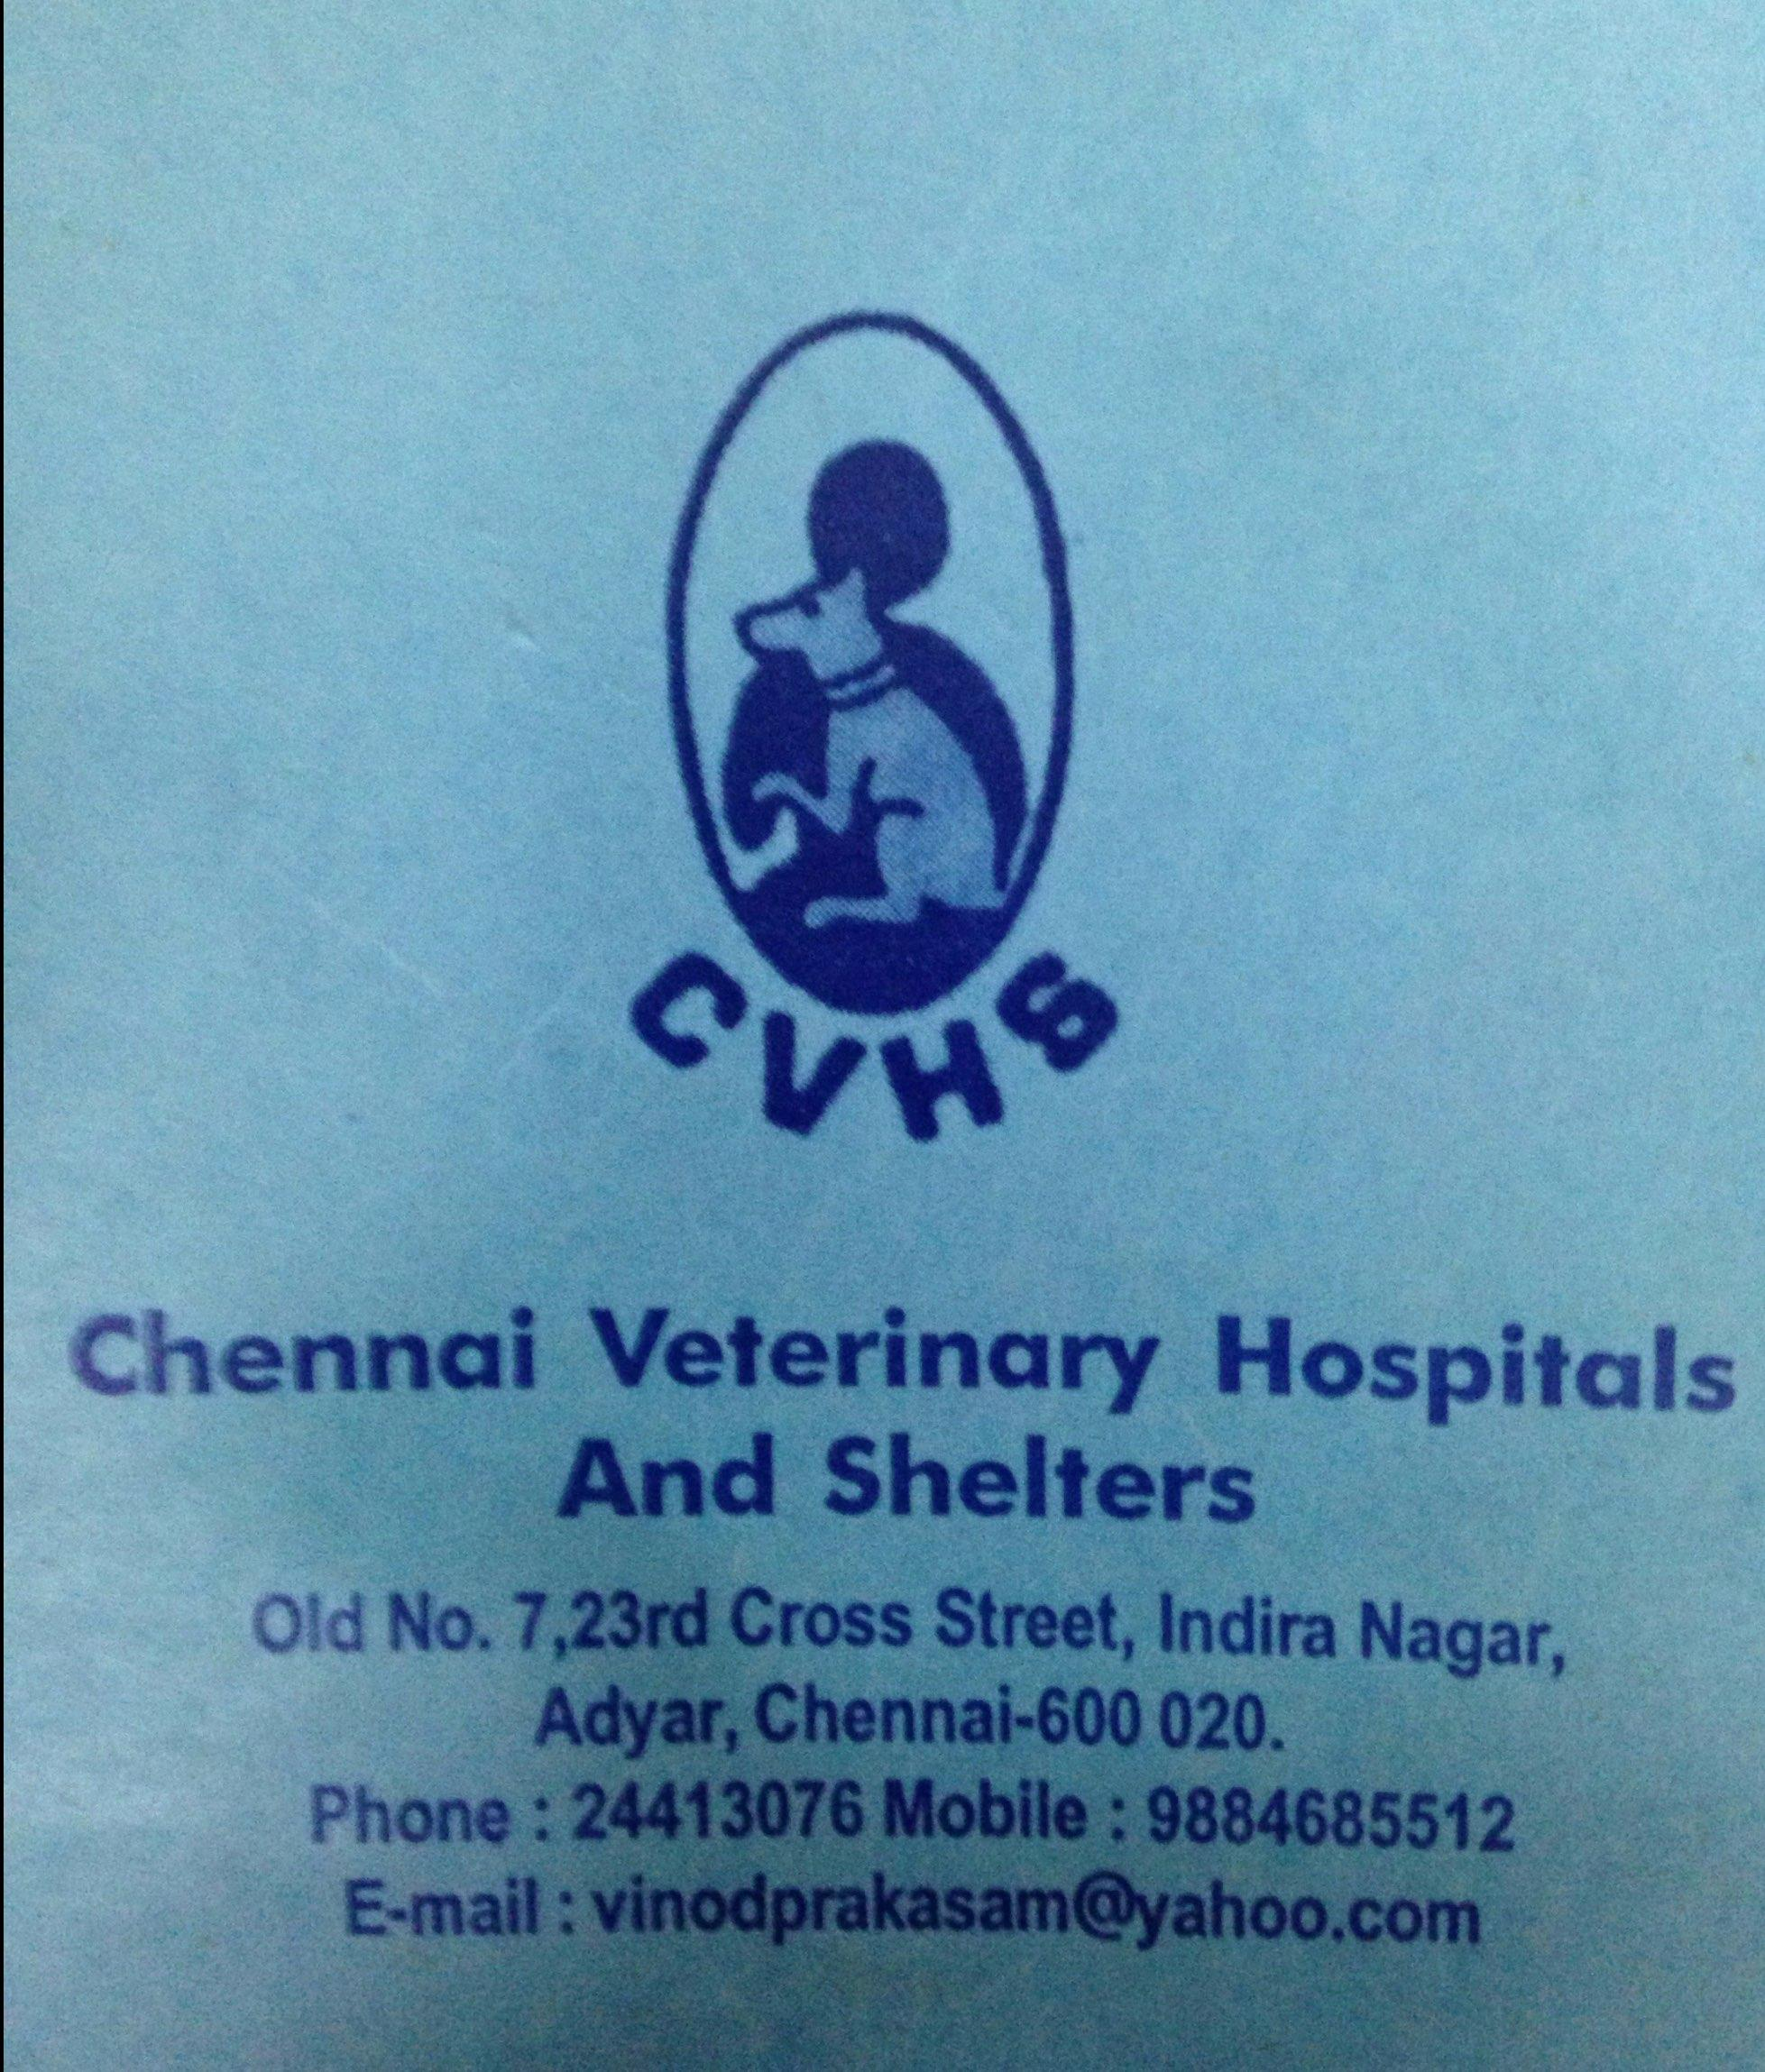 Chennai Veterinary Hospitals and Shelters